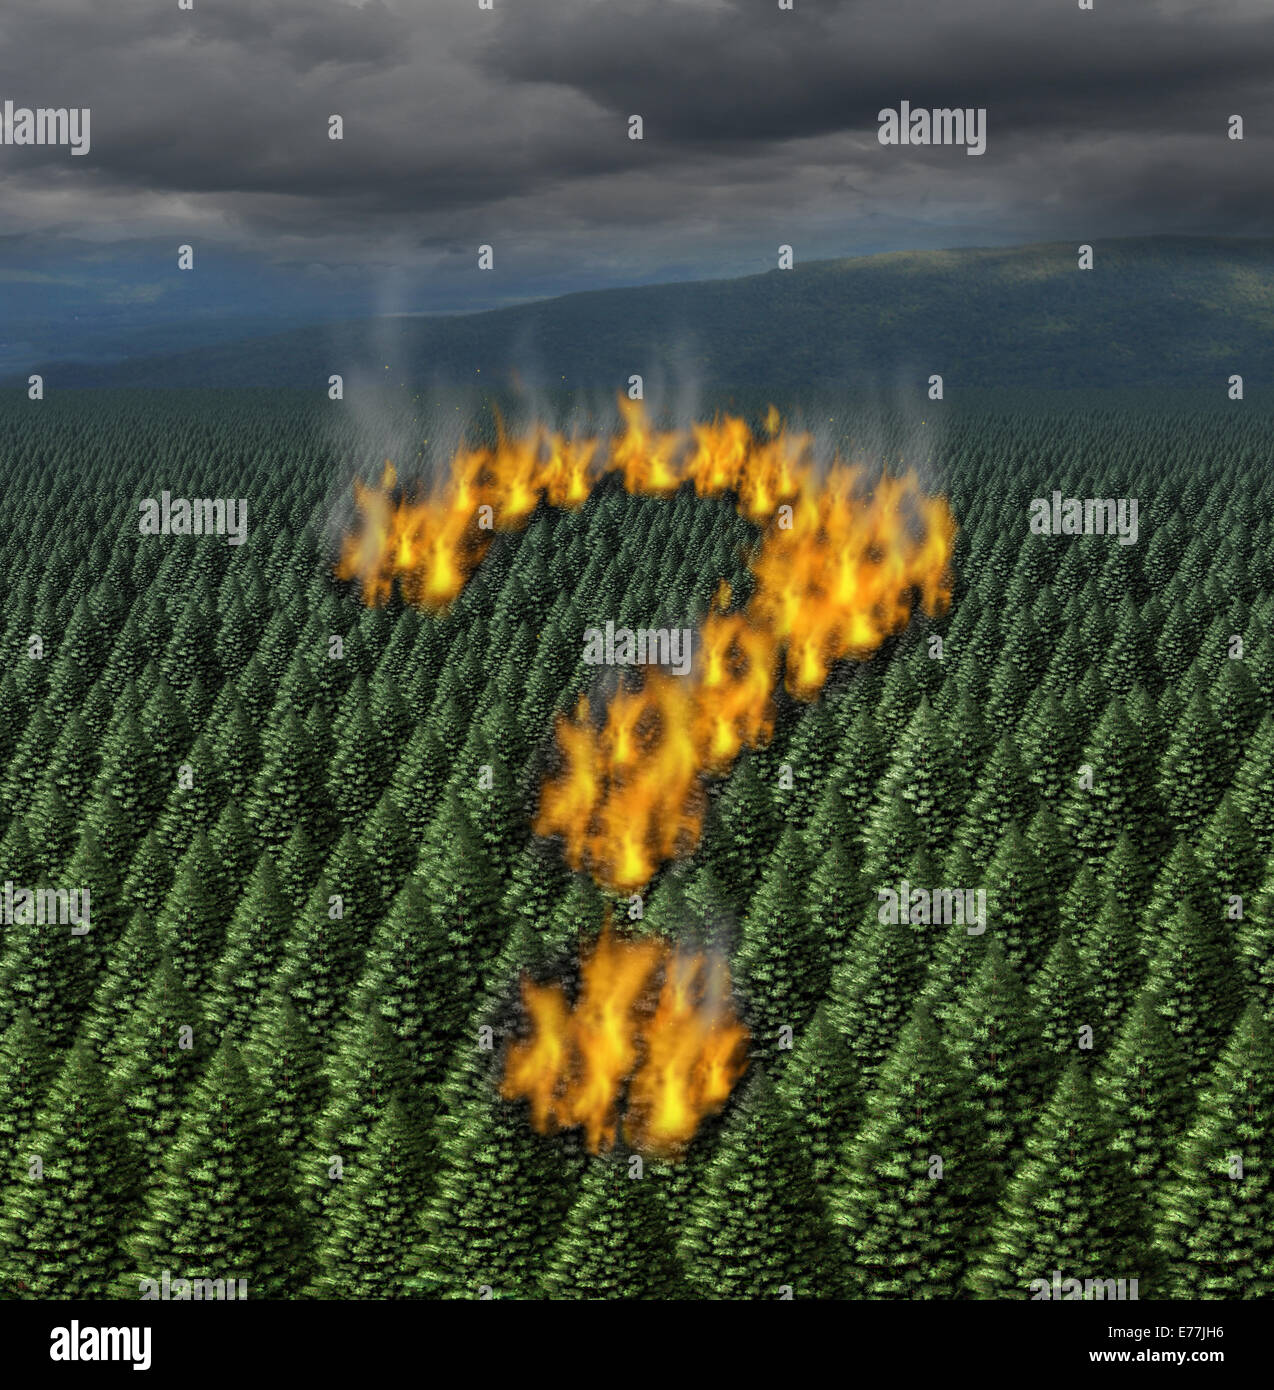 Forest fire concept as a raging wildfire burning through a forest of pine trees shaped as a question mark as a symbol - Stock Image